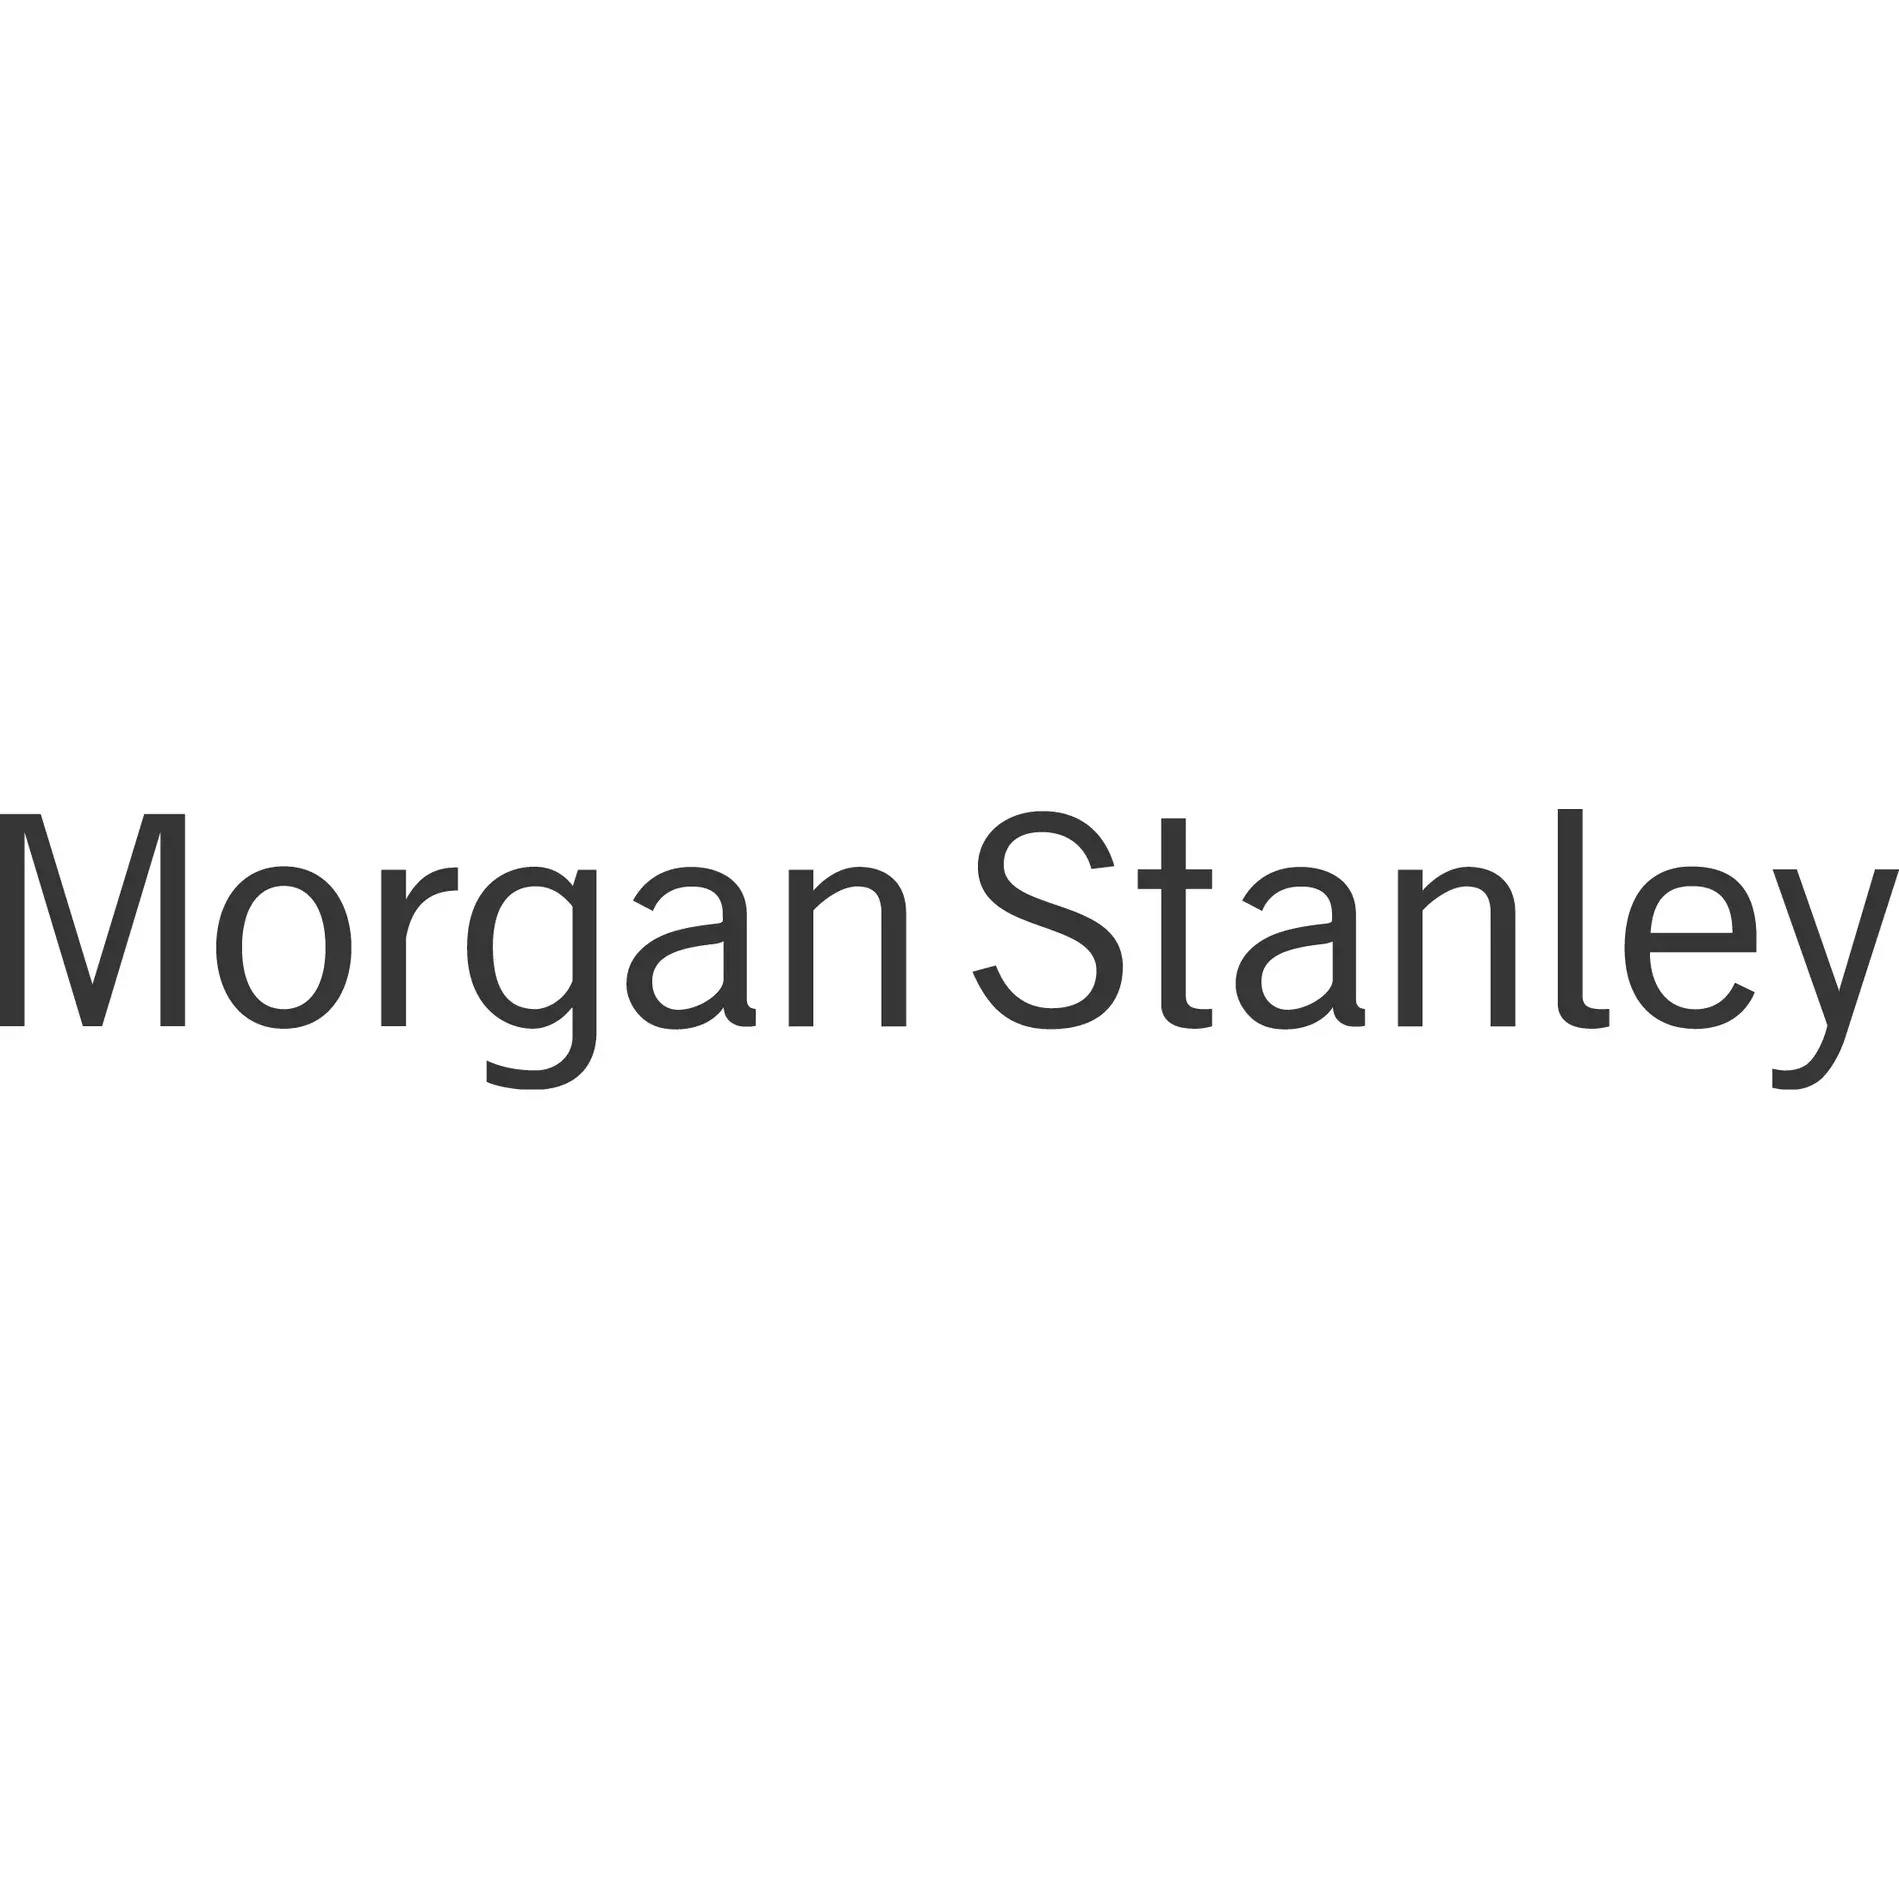 The David Miller Group - Morgan Stanley